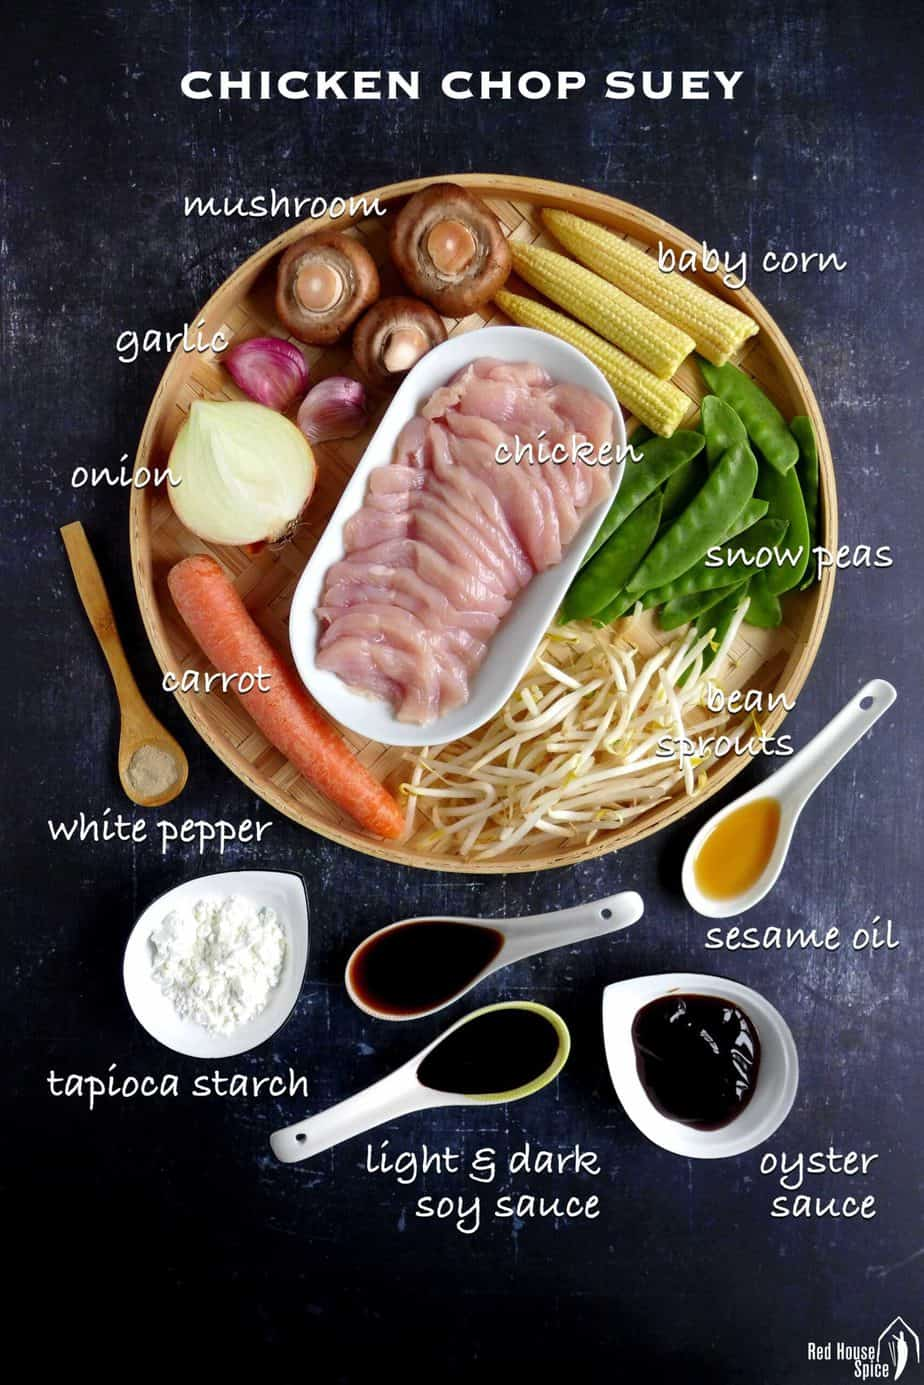 Ingredients for cooking chicken chop suey